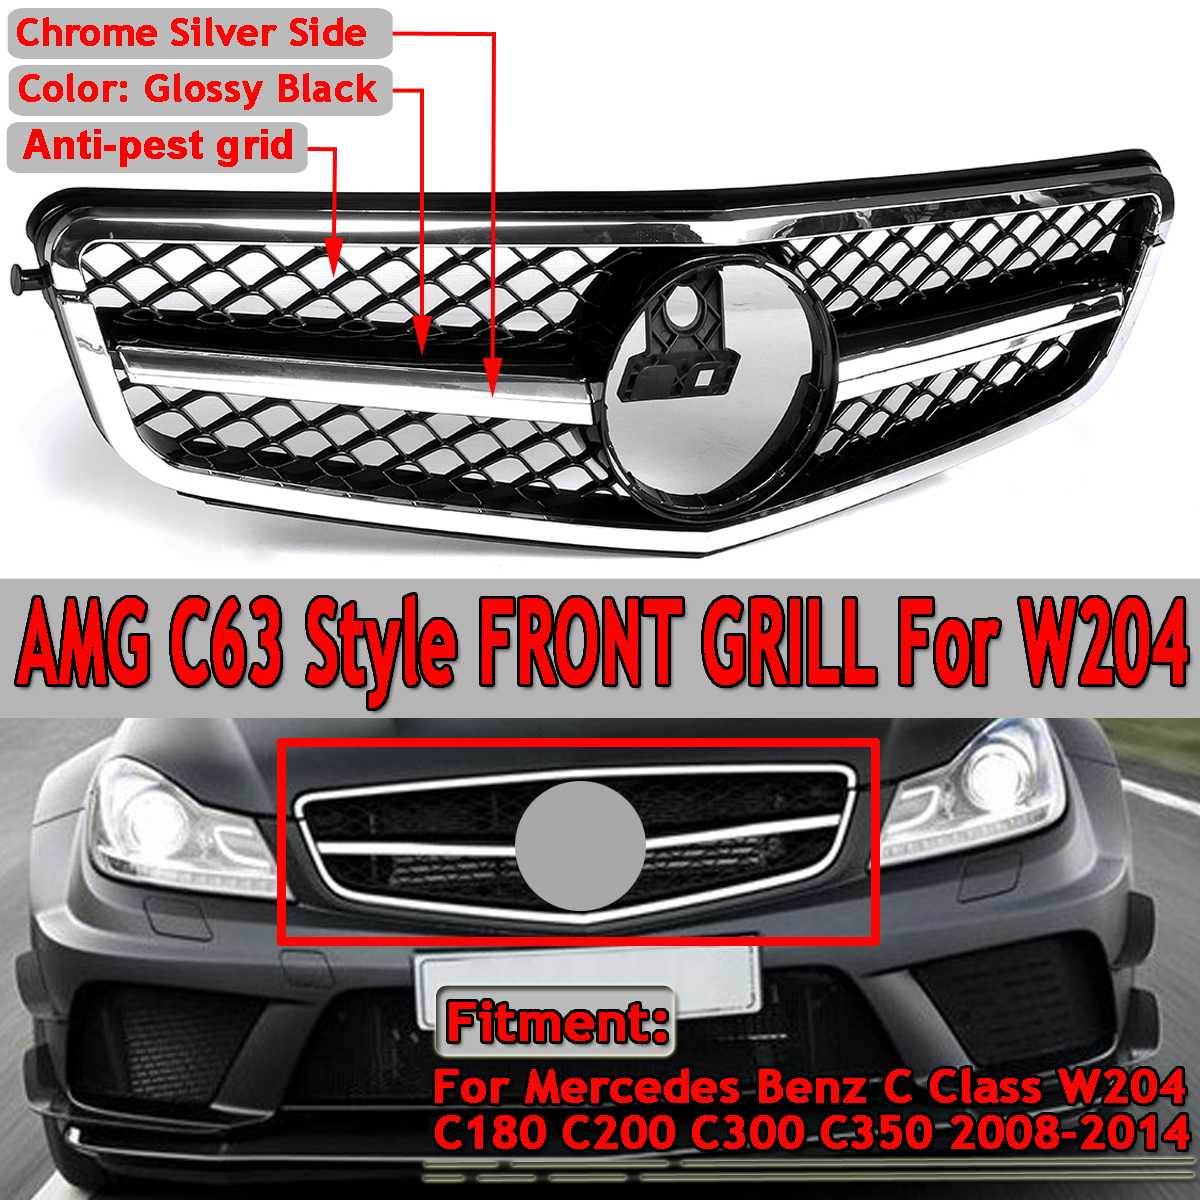 1x For AMG C63 Style Car Front Upper Grille <font><b>Grill</b></font> For Mercedes For <font><b>Benz</b></font> C Class <font><b>W204</b></font> C180 C200 C300 C350 2008-2014 Racing Grille image